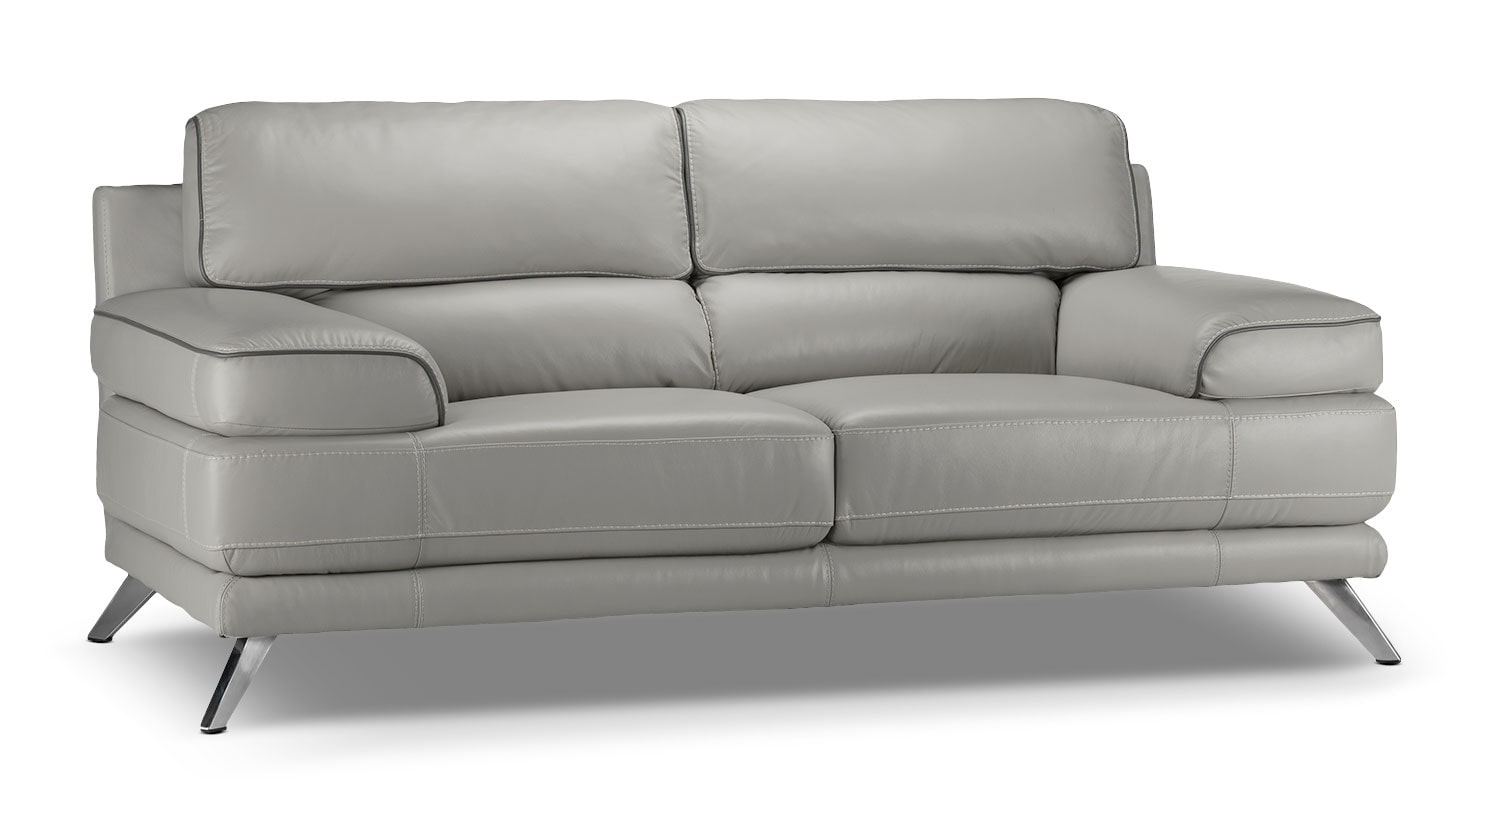 Living Room Furniture - Sutton Loveseat - Grey